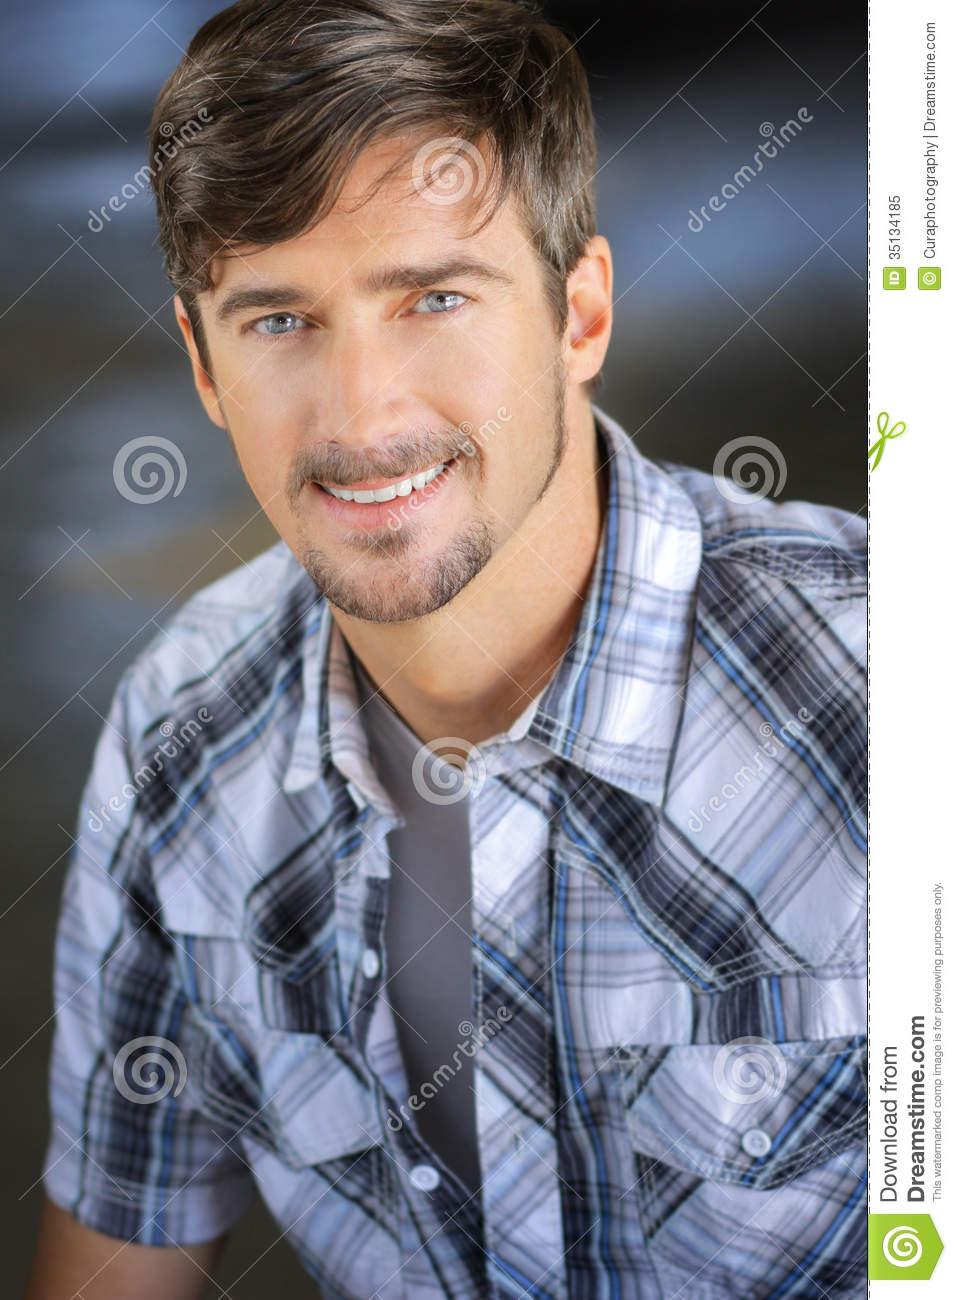 Confident Smile Man Stock Image. Image Of Carefree, Close